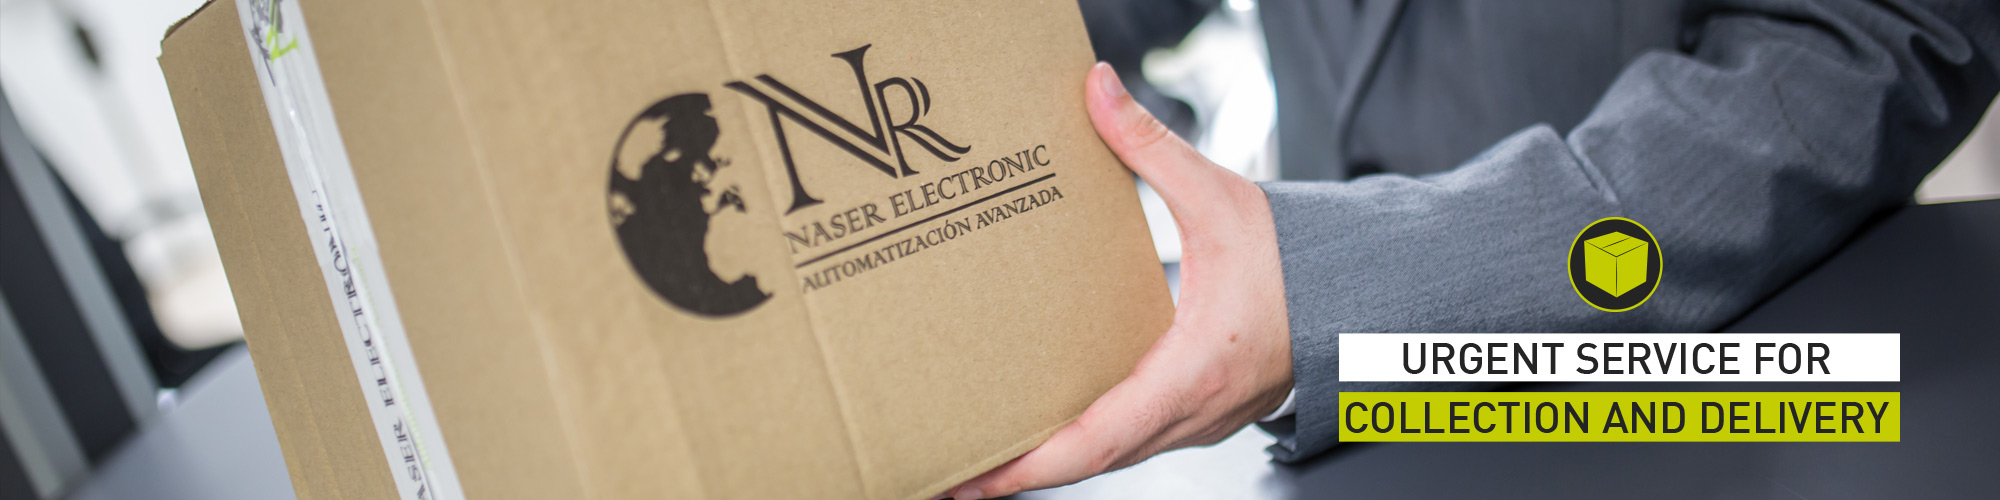 Naser electronic s&l fashions dress collection